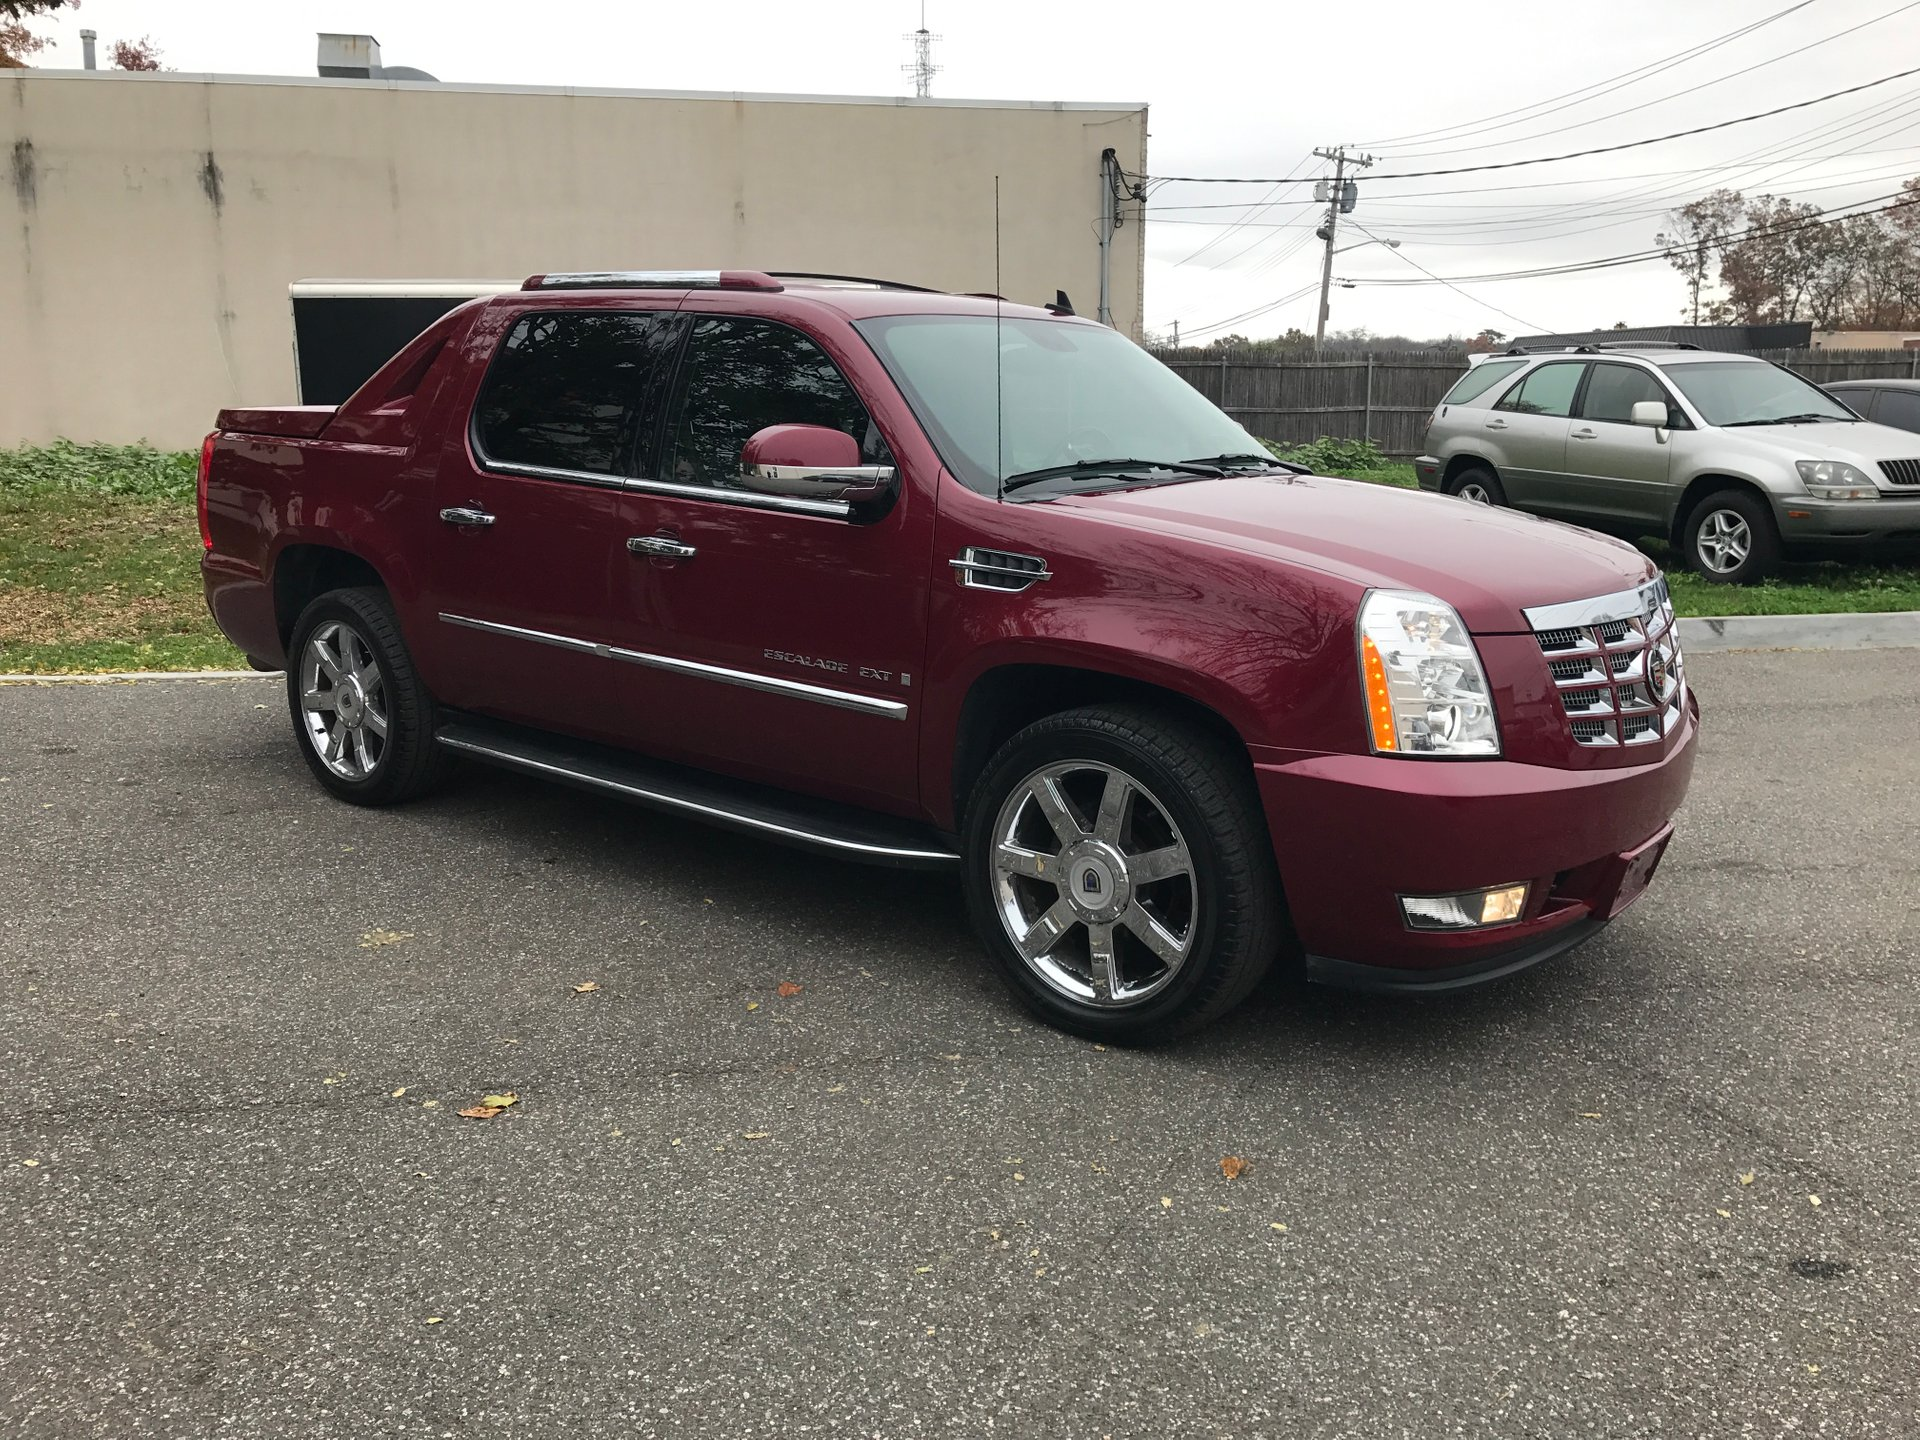 Escalade Ext For Sale >> 2007 Cadillac Escalade Ext Awd 4dr For Sale 70015 Mcg